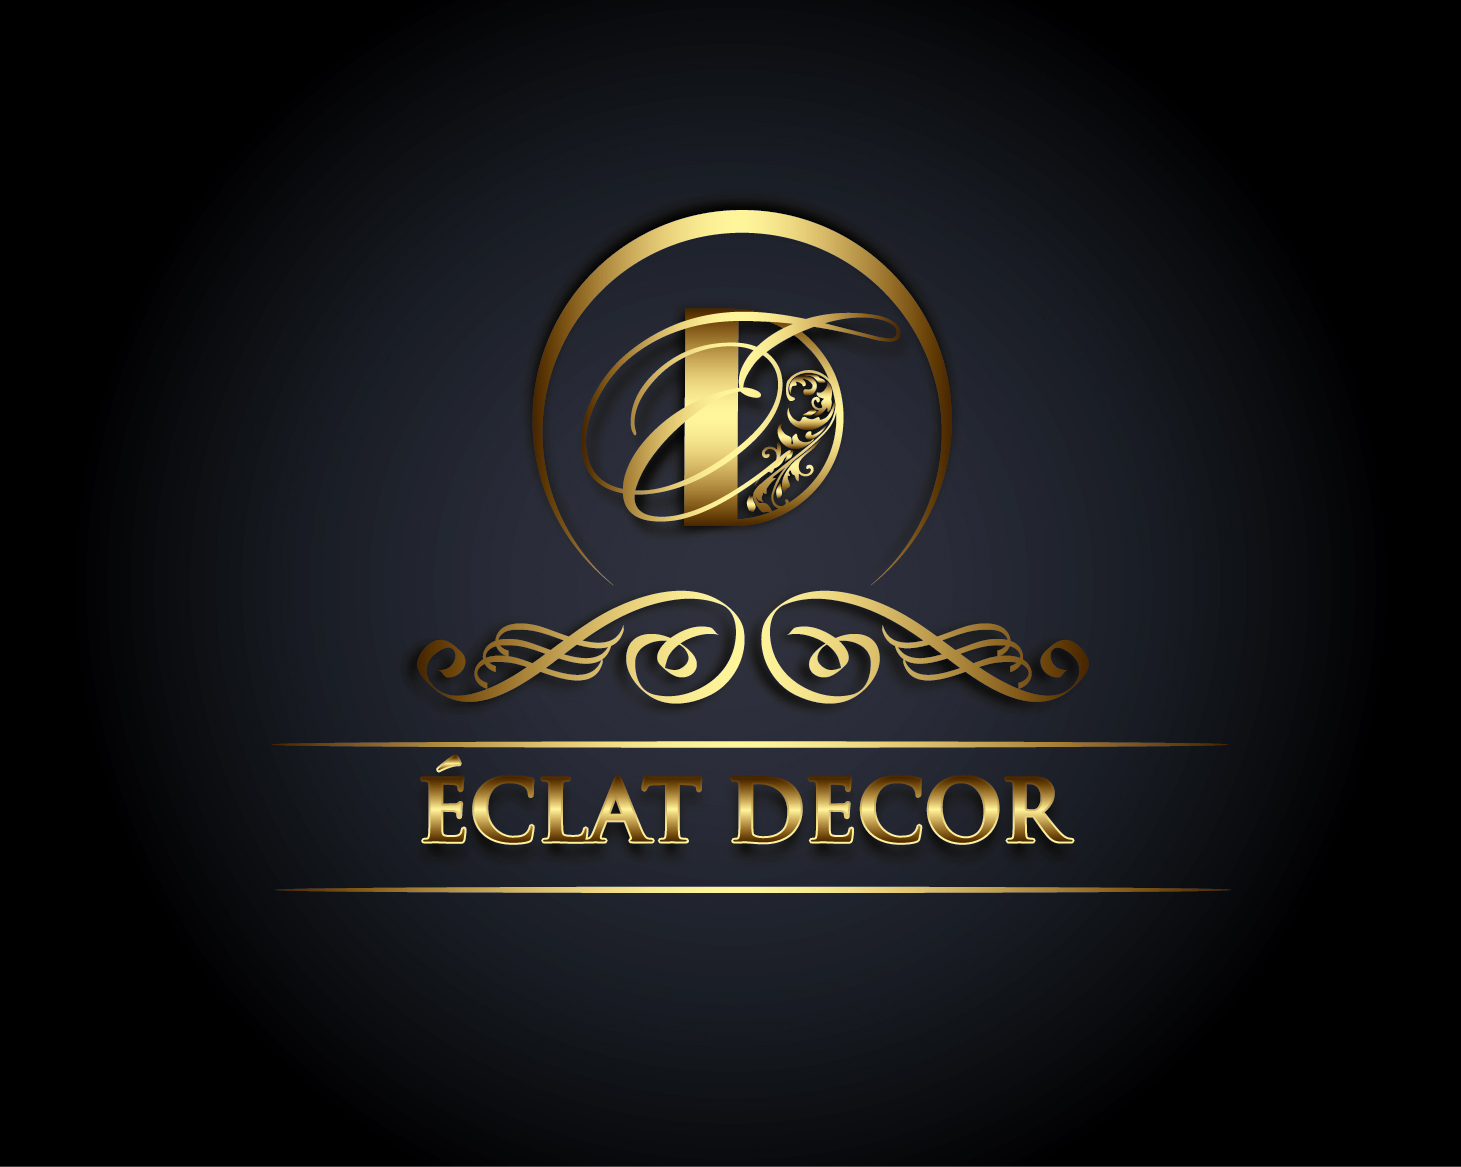 Logo Design by VENTSISLAV KOVACHEV - Entry No. 34 in the Logo Design Contest Imaginative Logo Design for Éclat Decor.